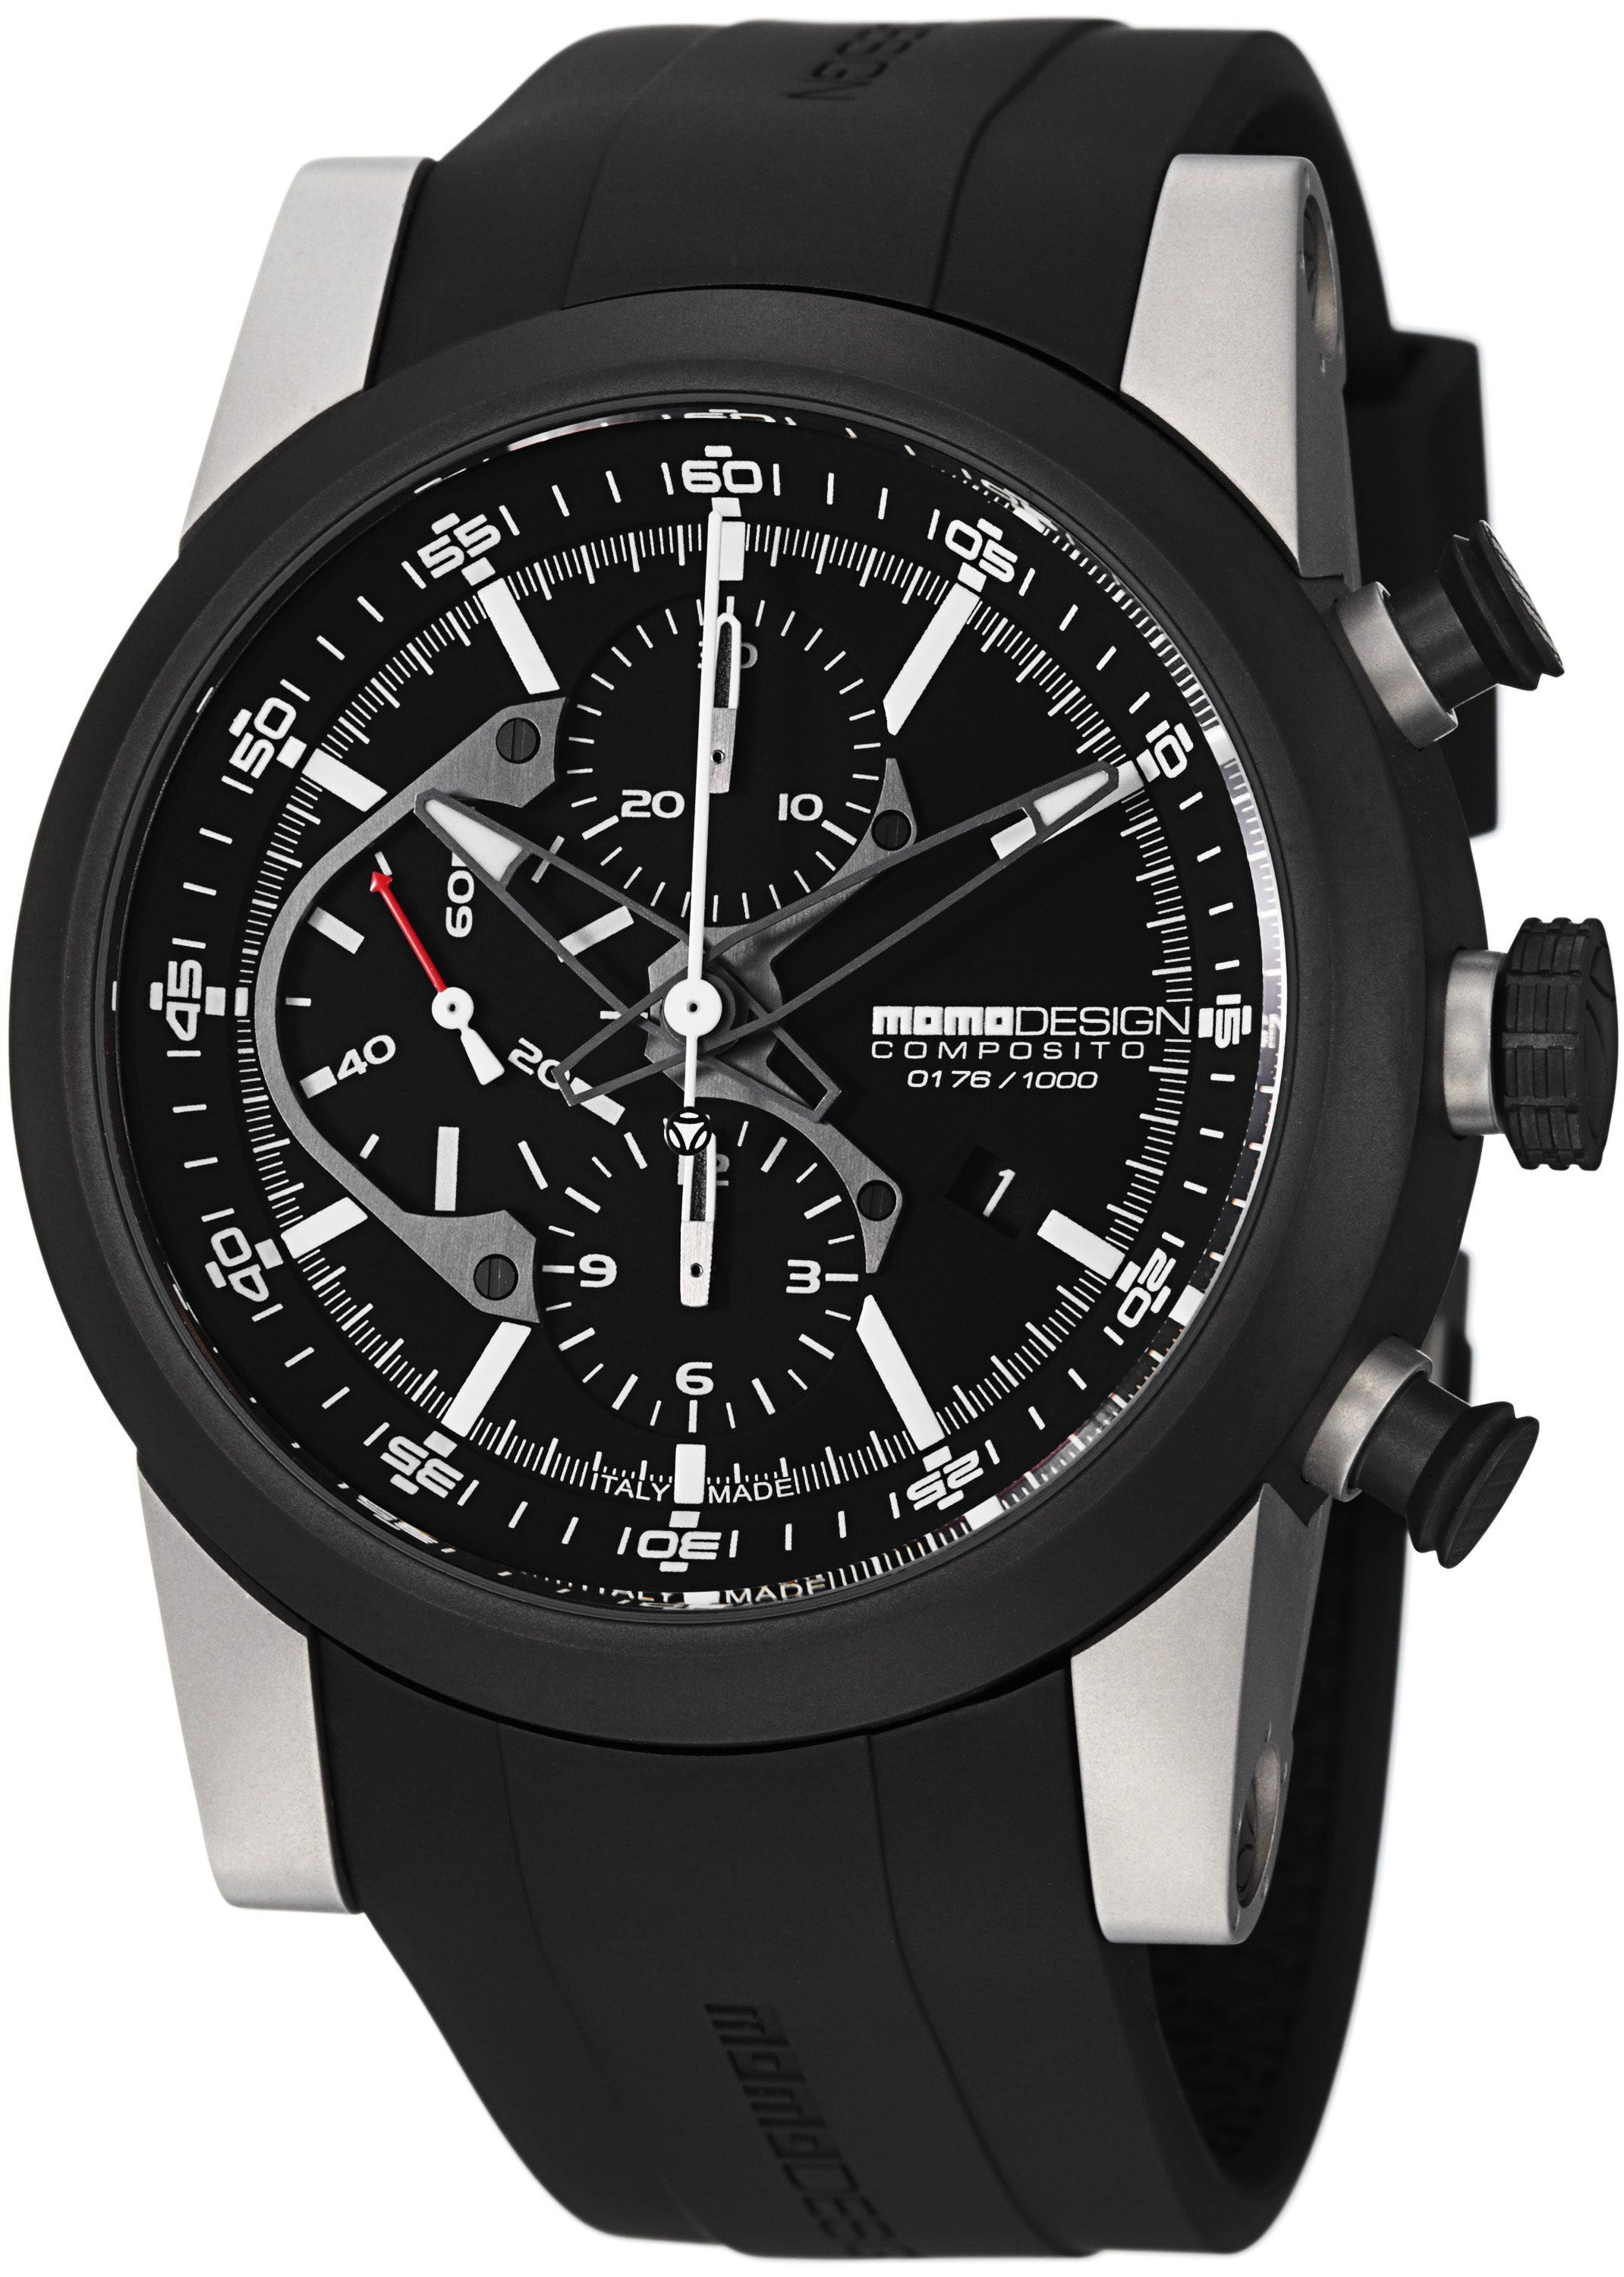 at as its baselworld favourite watches titanium all monobloc the watch angle design watchpro porsche names actuator